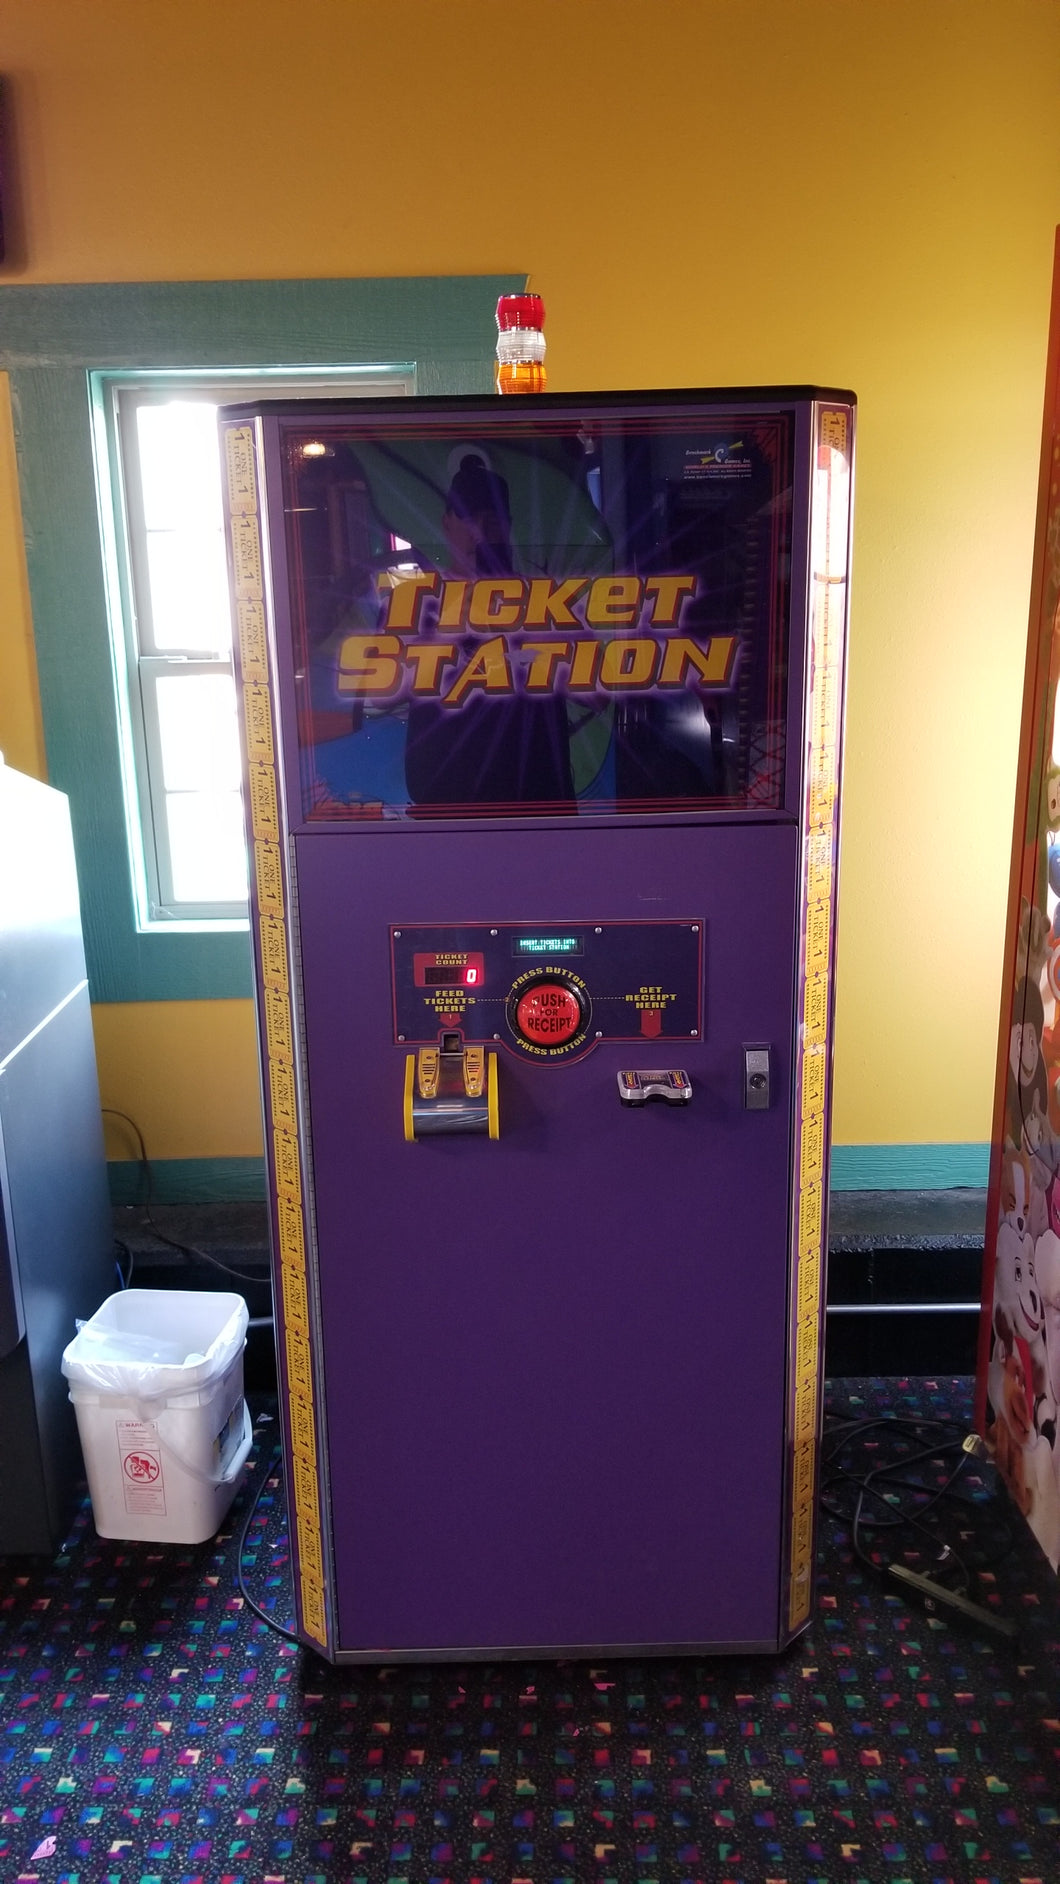 Benchmark Ticket Station - $3510.00 (Only sold after all redemption games are sold)